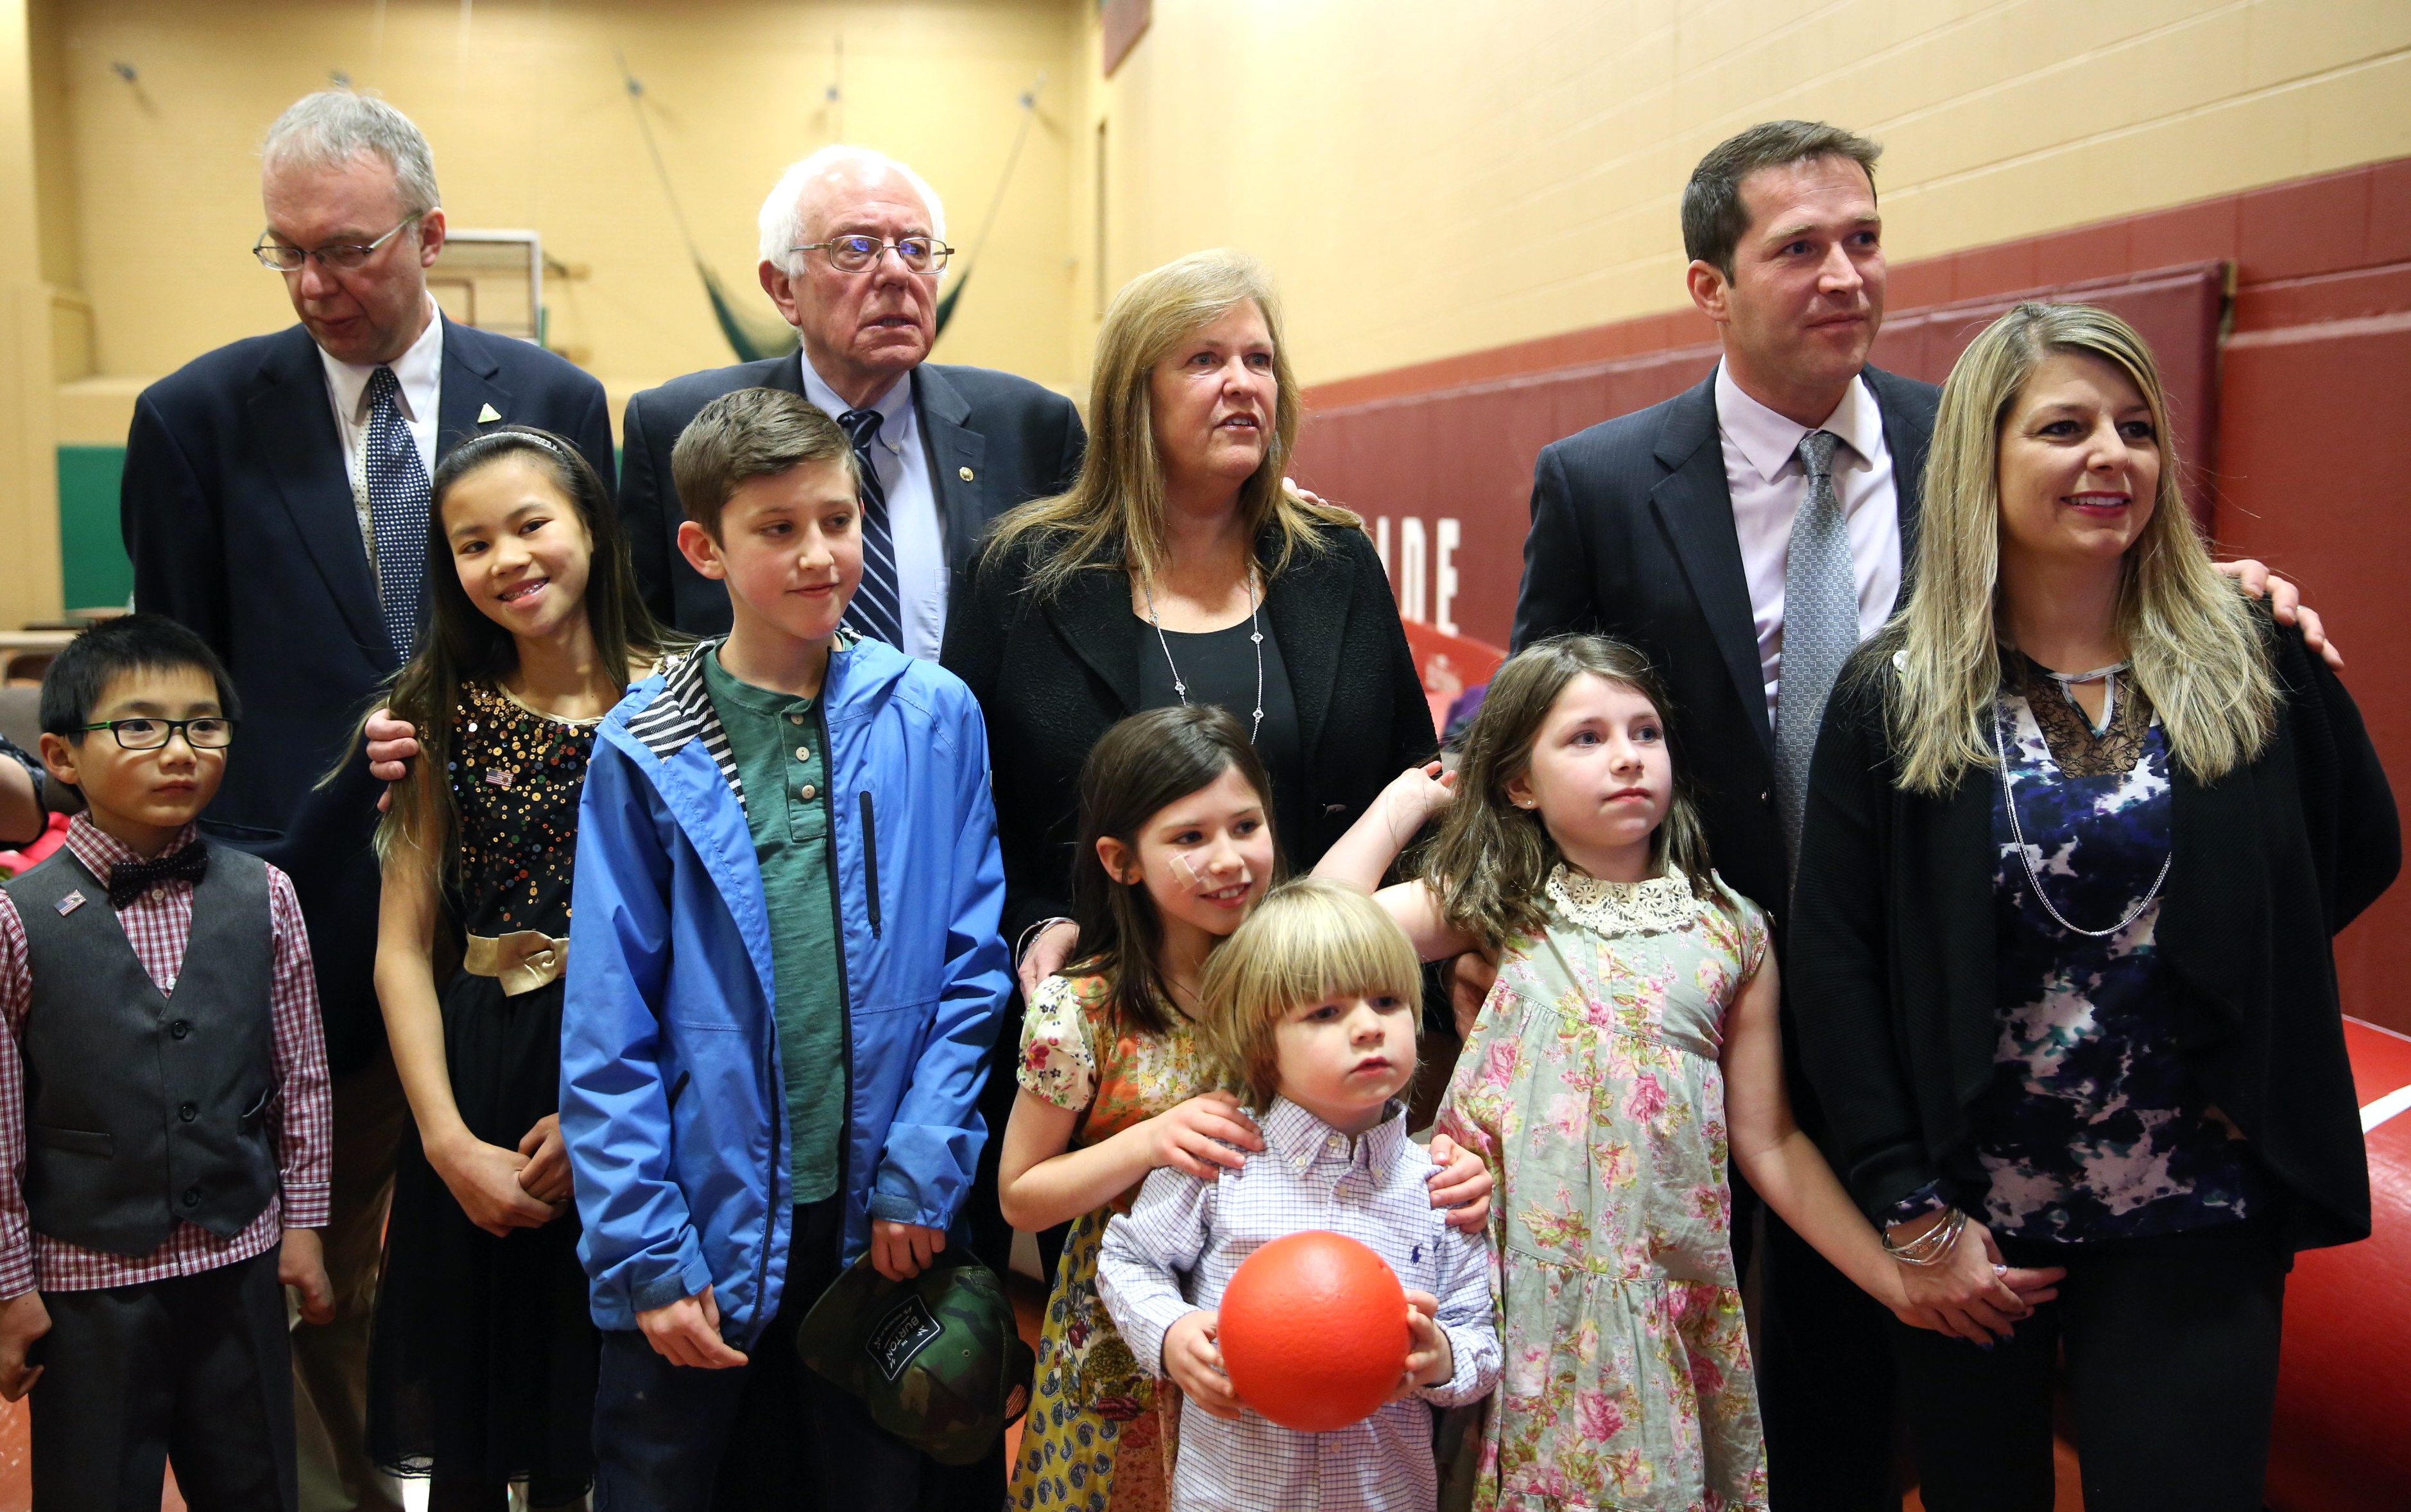 Vermont Sen. Bernie Sanders watches primary returns with his family on election night in Concord, N.H.,on Feb. 9, 2016.